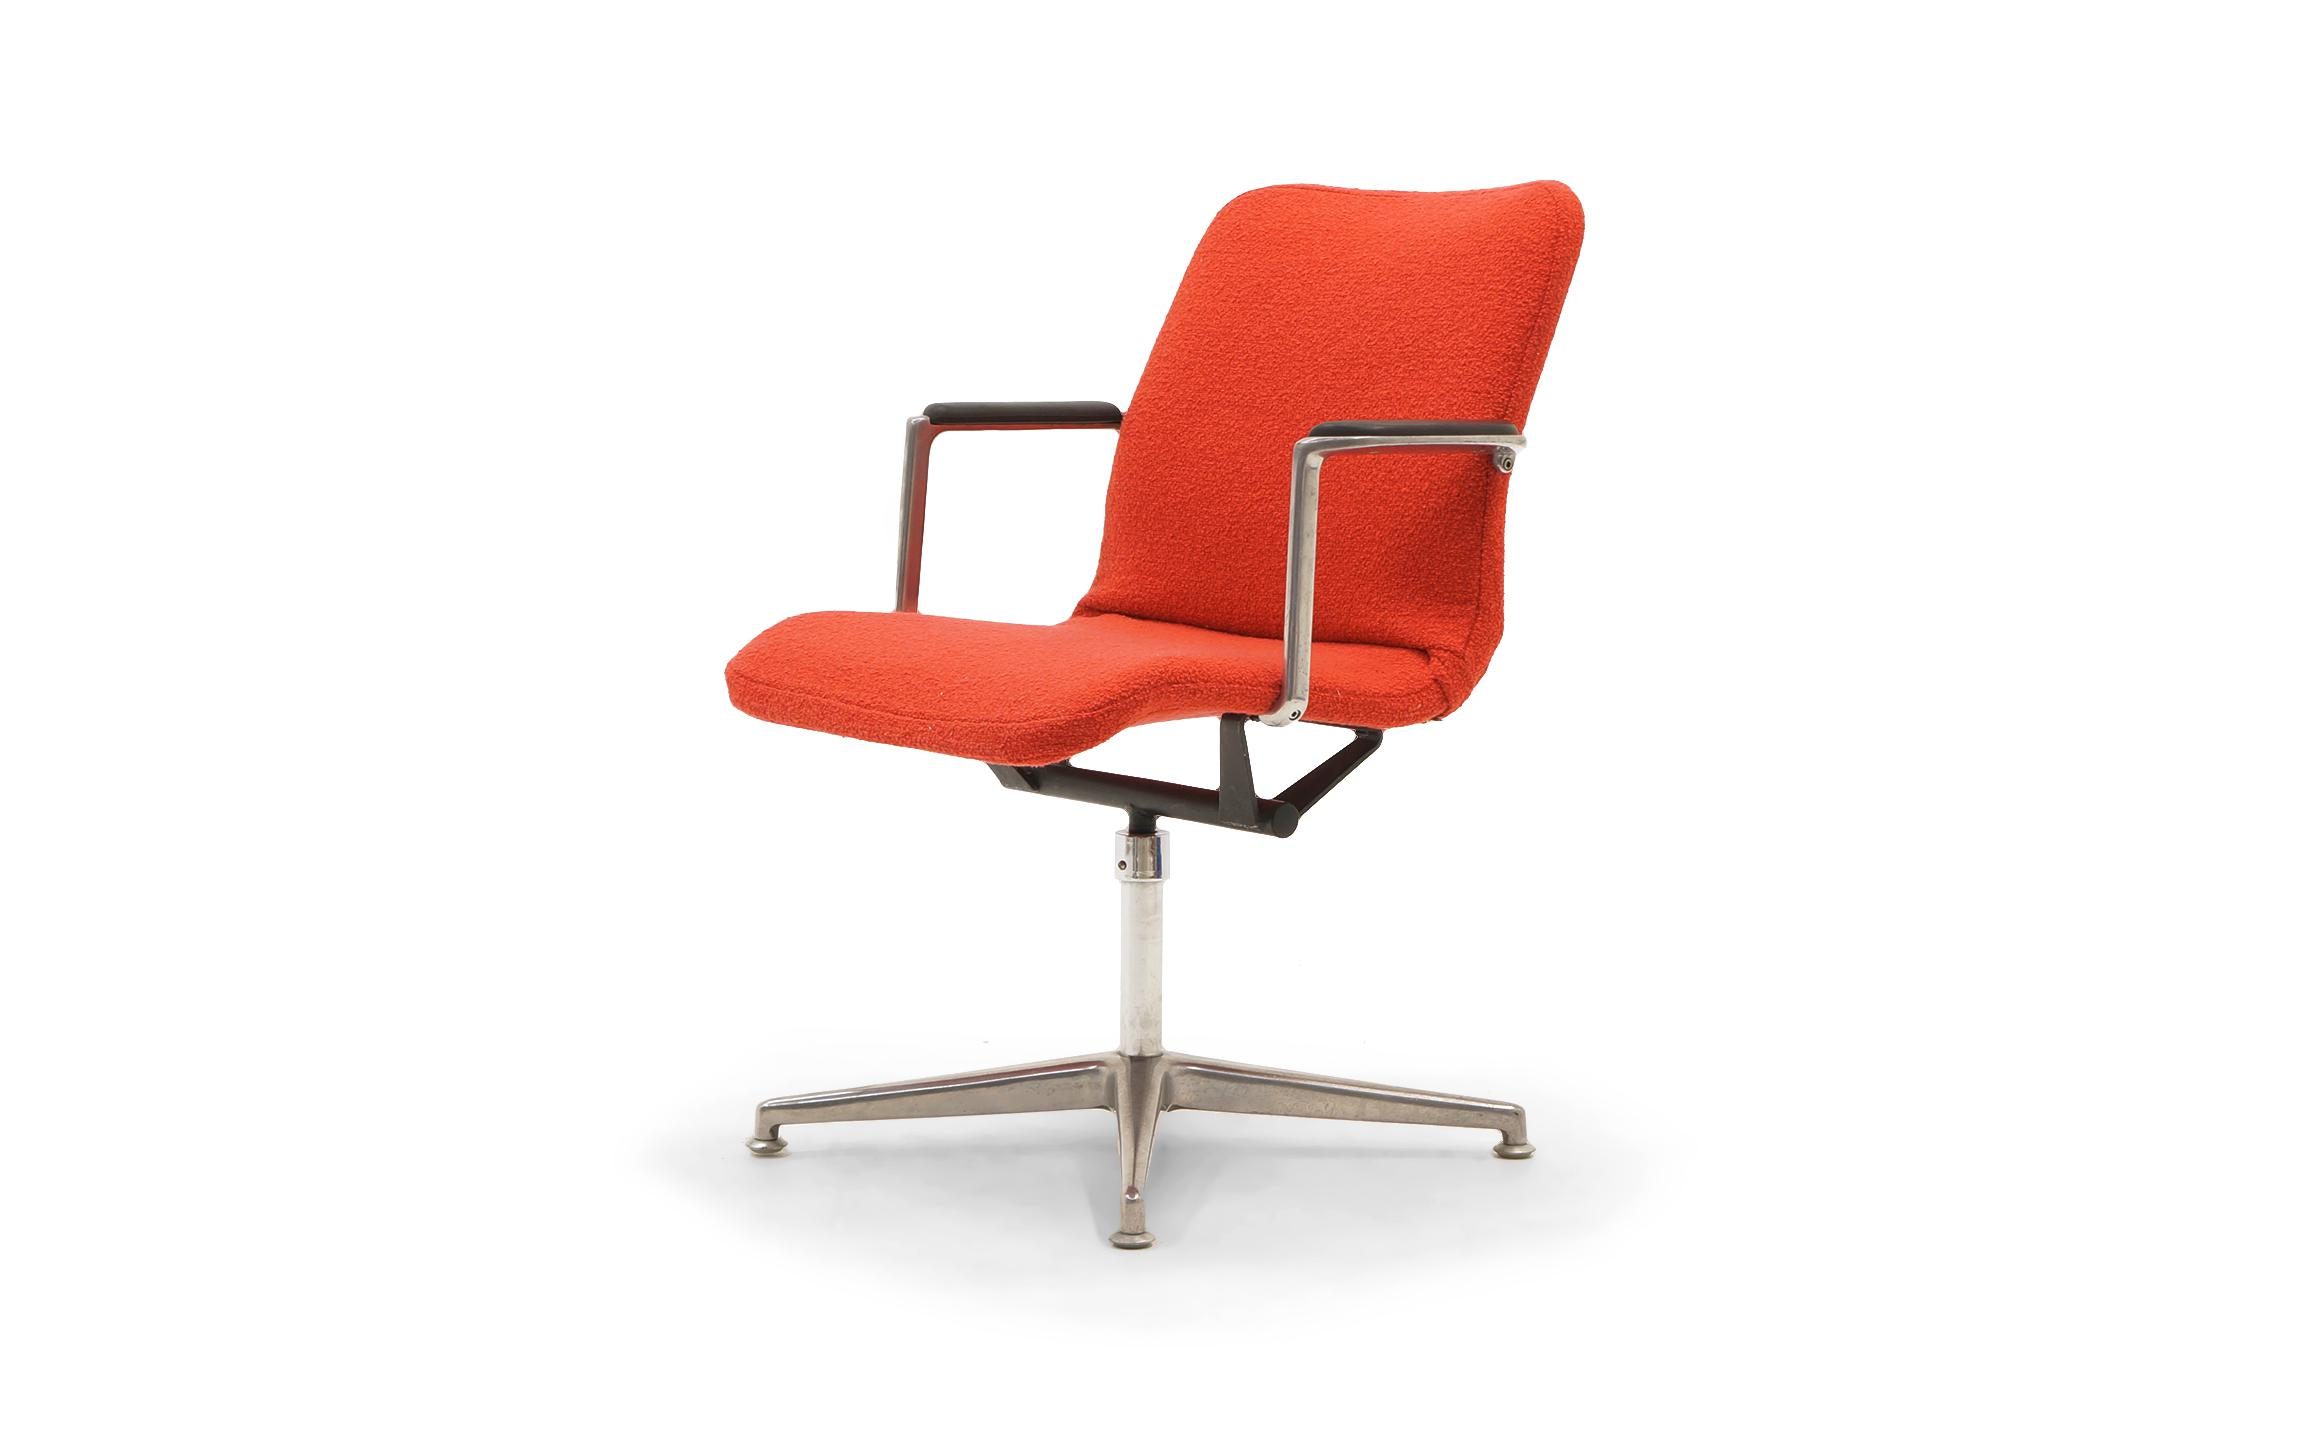 office chair very small papasan cushion exceptional george nelson desk or rare new red freshly reupholstered in a crimson knoll classic boucle